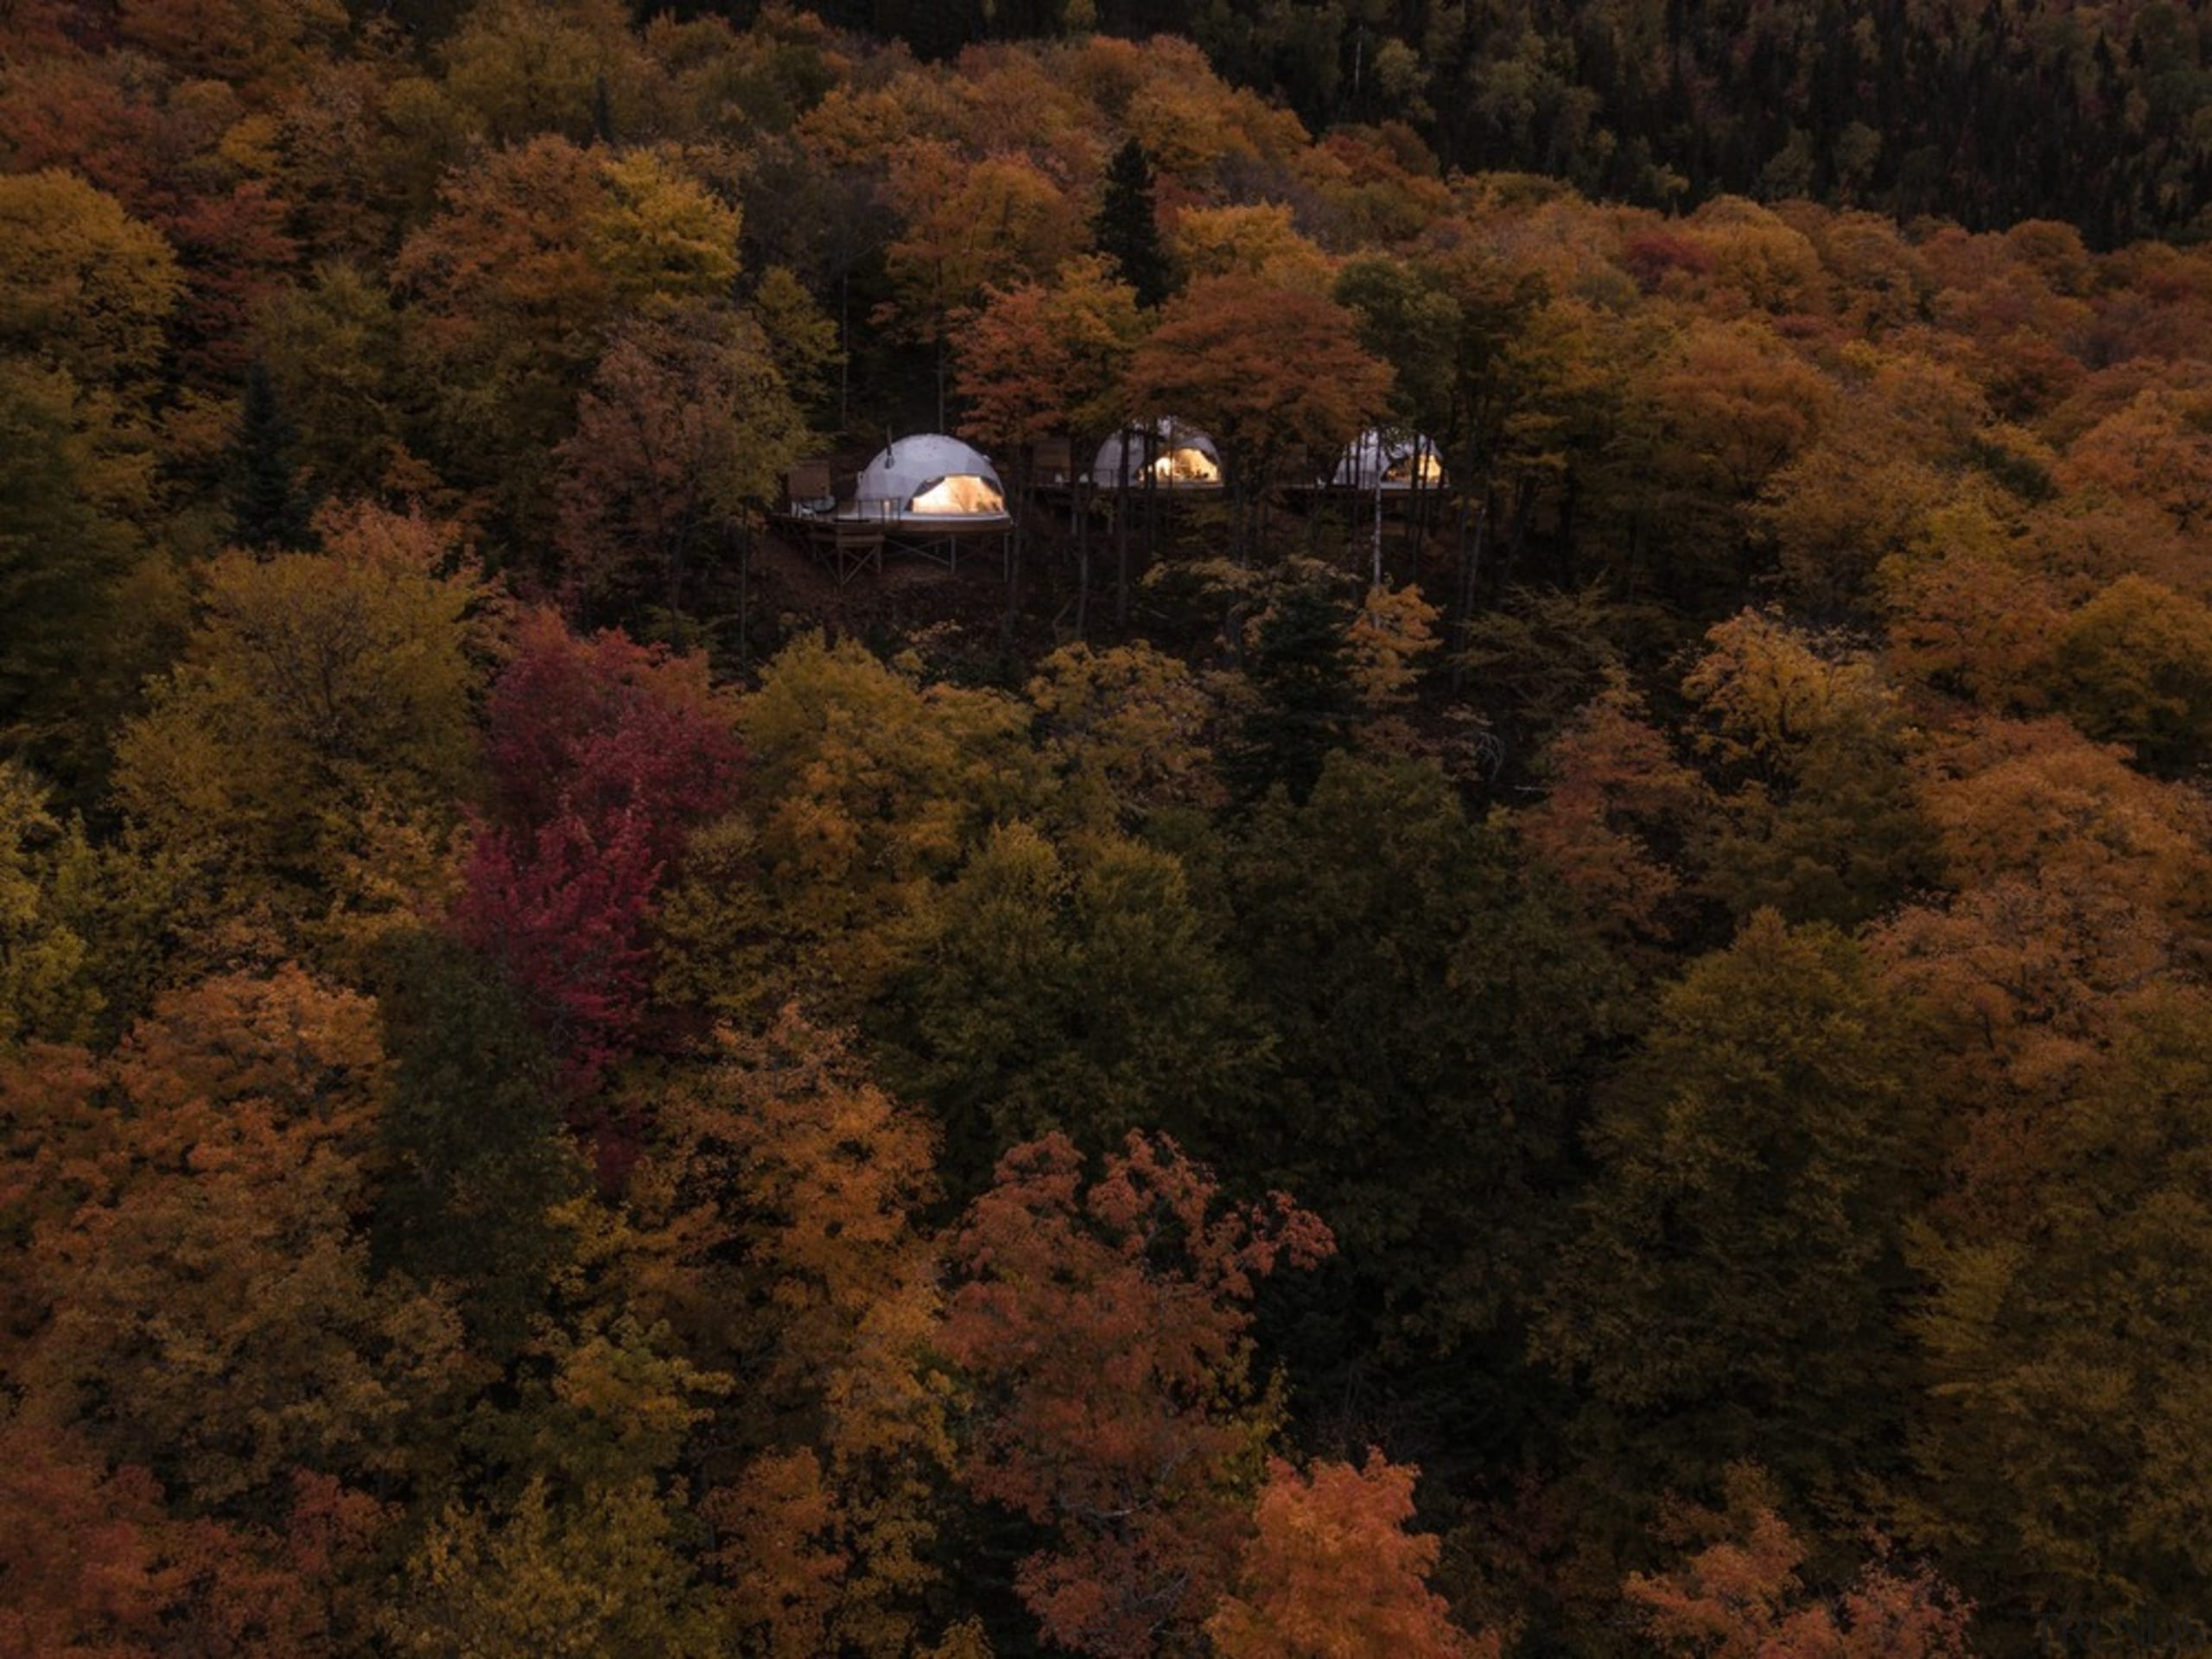 Dome 3 - aerial photography | autumn | aerial photography, autumn, biome, deciduous, forest, hill, landscape, leaf, morning, nature, plant, rural area, sky, temperate broadleaf and mixed forest, tree, wilderness, woody plant, brown, black